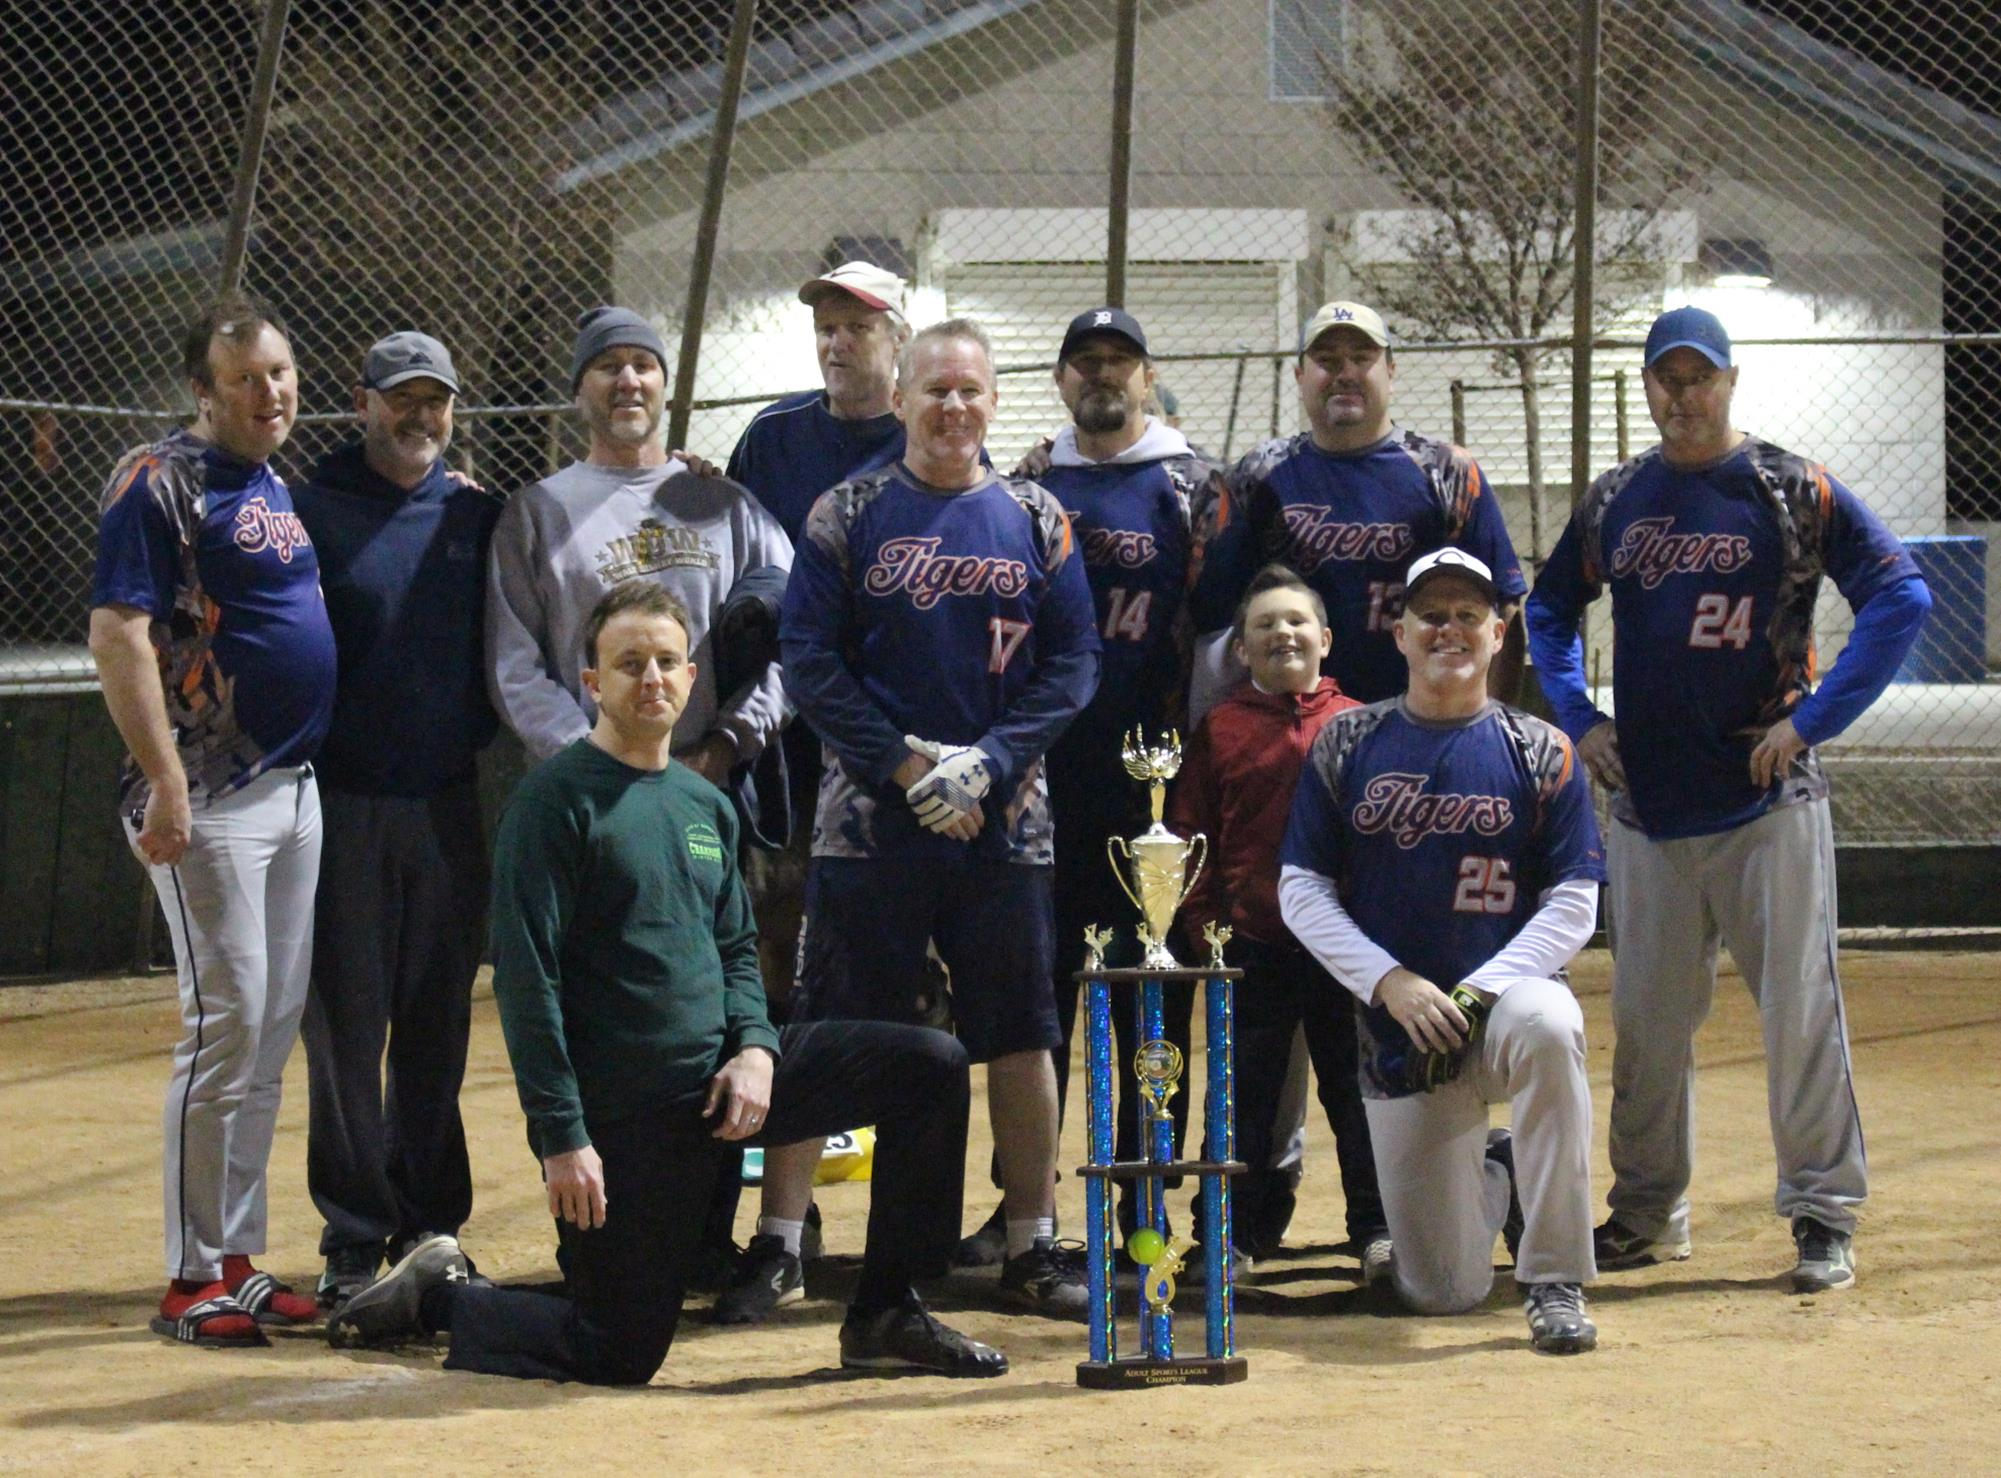 Adult softball team with trophy